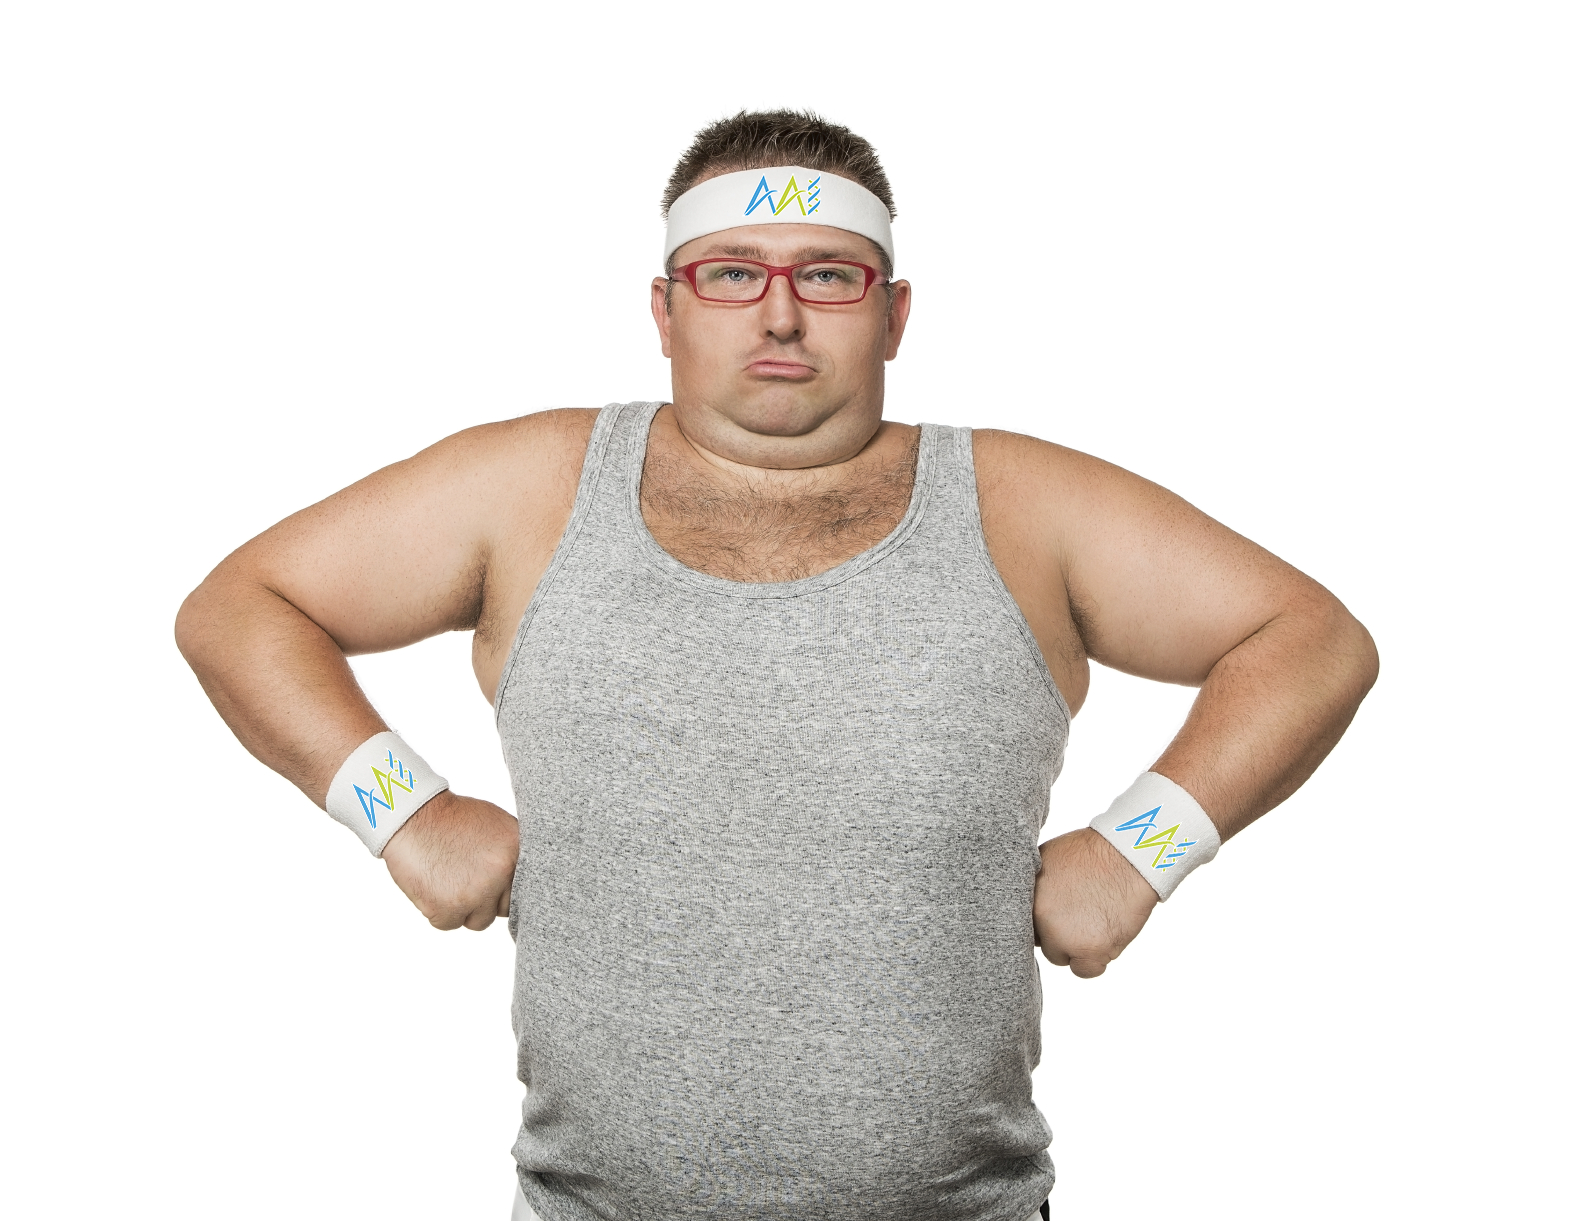 Low Testosterone Crisis: Being overweight helps to keep your estrogen up  and your testosterone down - PNG Fat Man